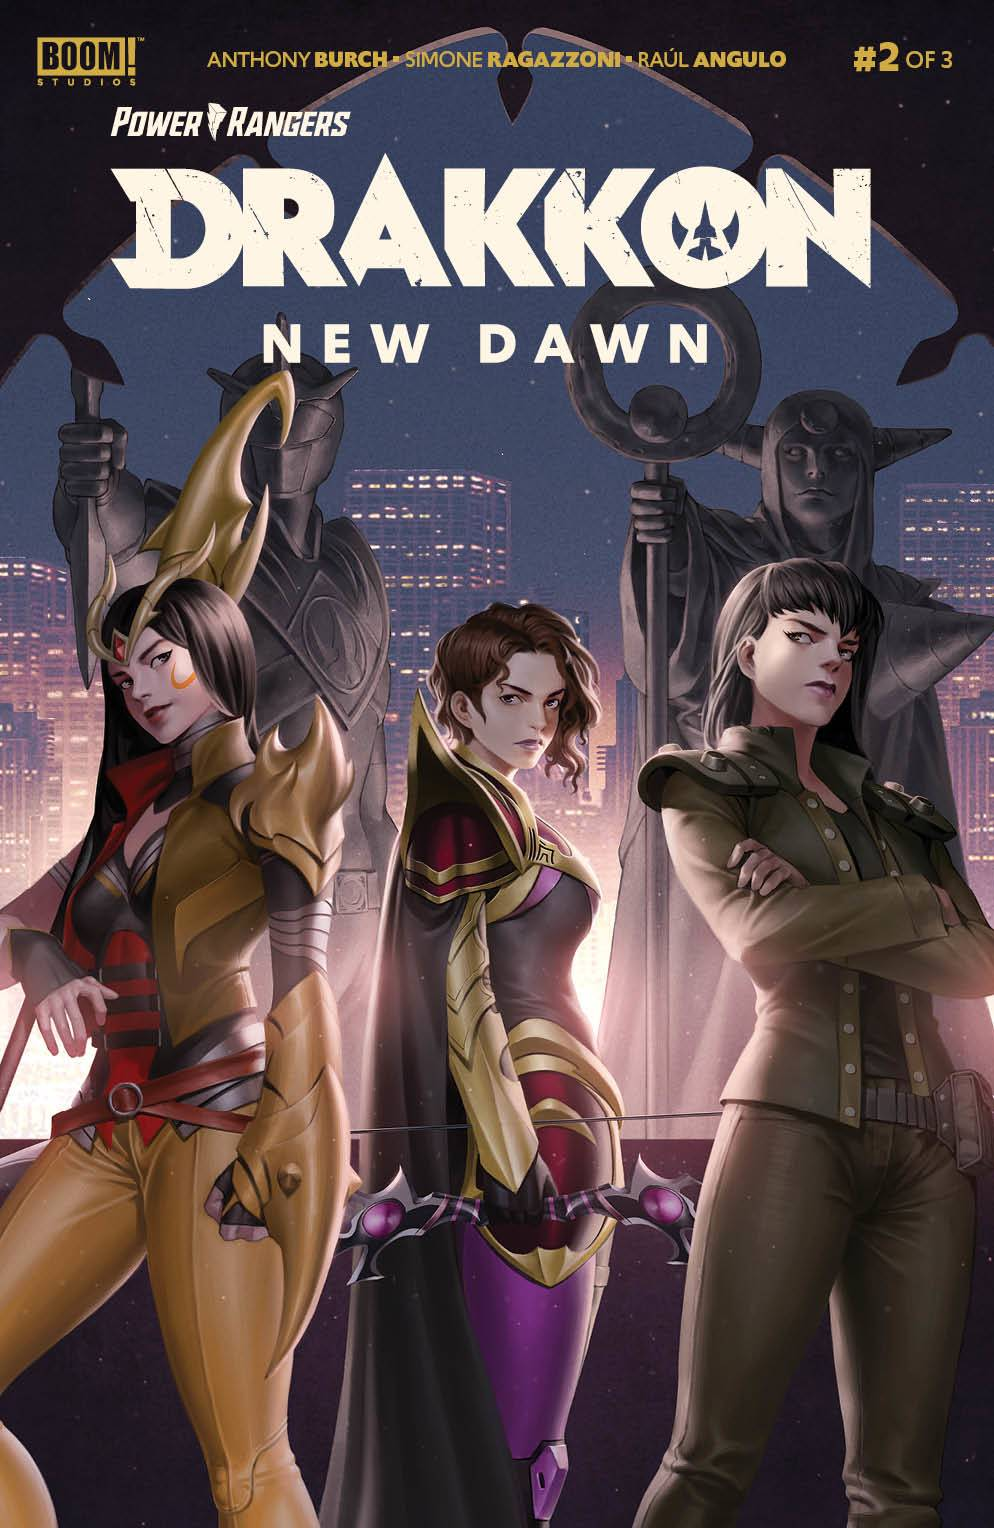 POWER RANGERS DRAKKON NEW DAWN #2 CVR A MAIN SECRET